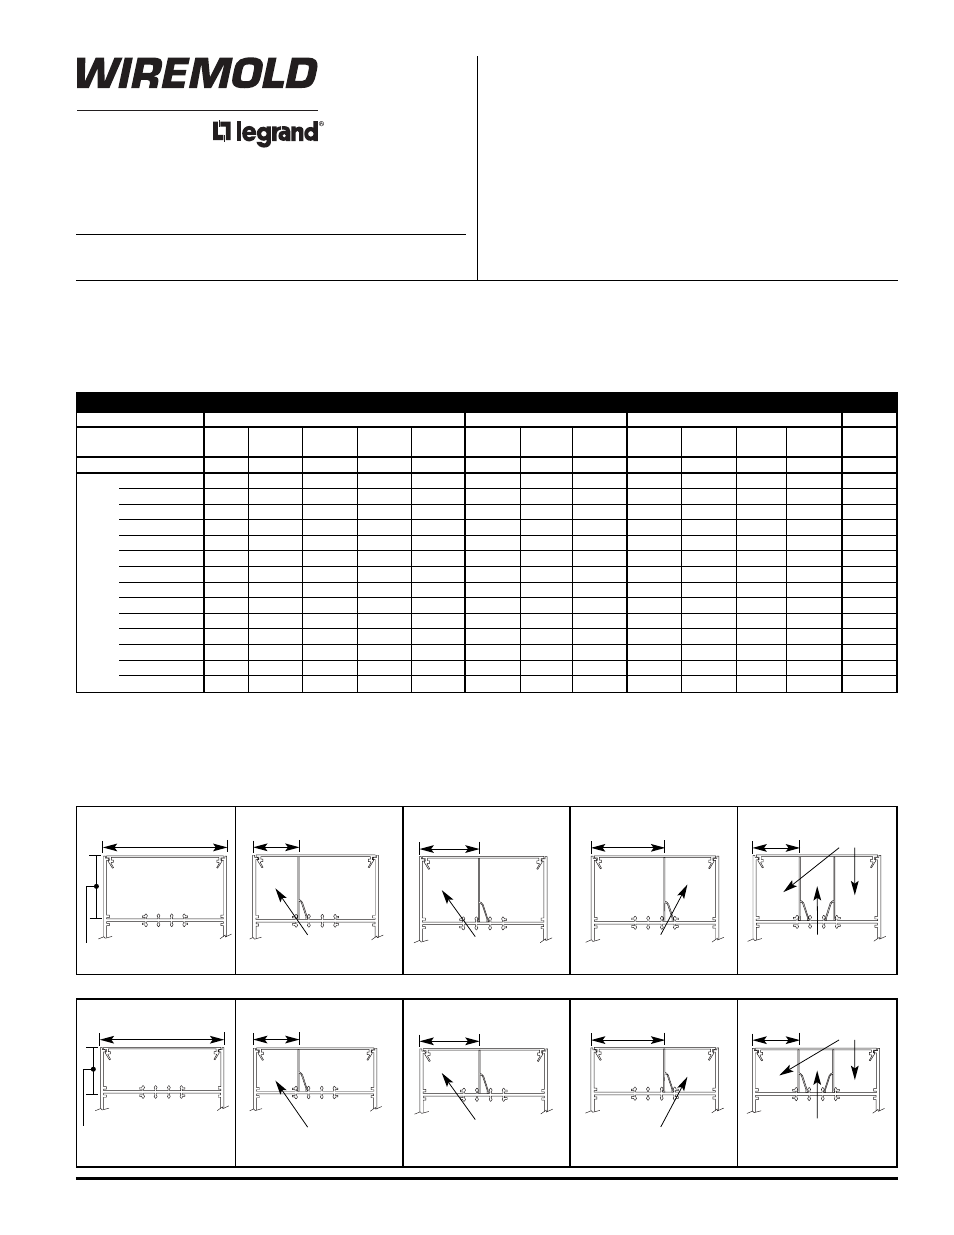 Legrand NP800 Series User Manual | 2 pages